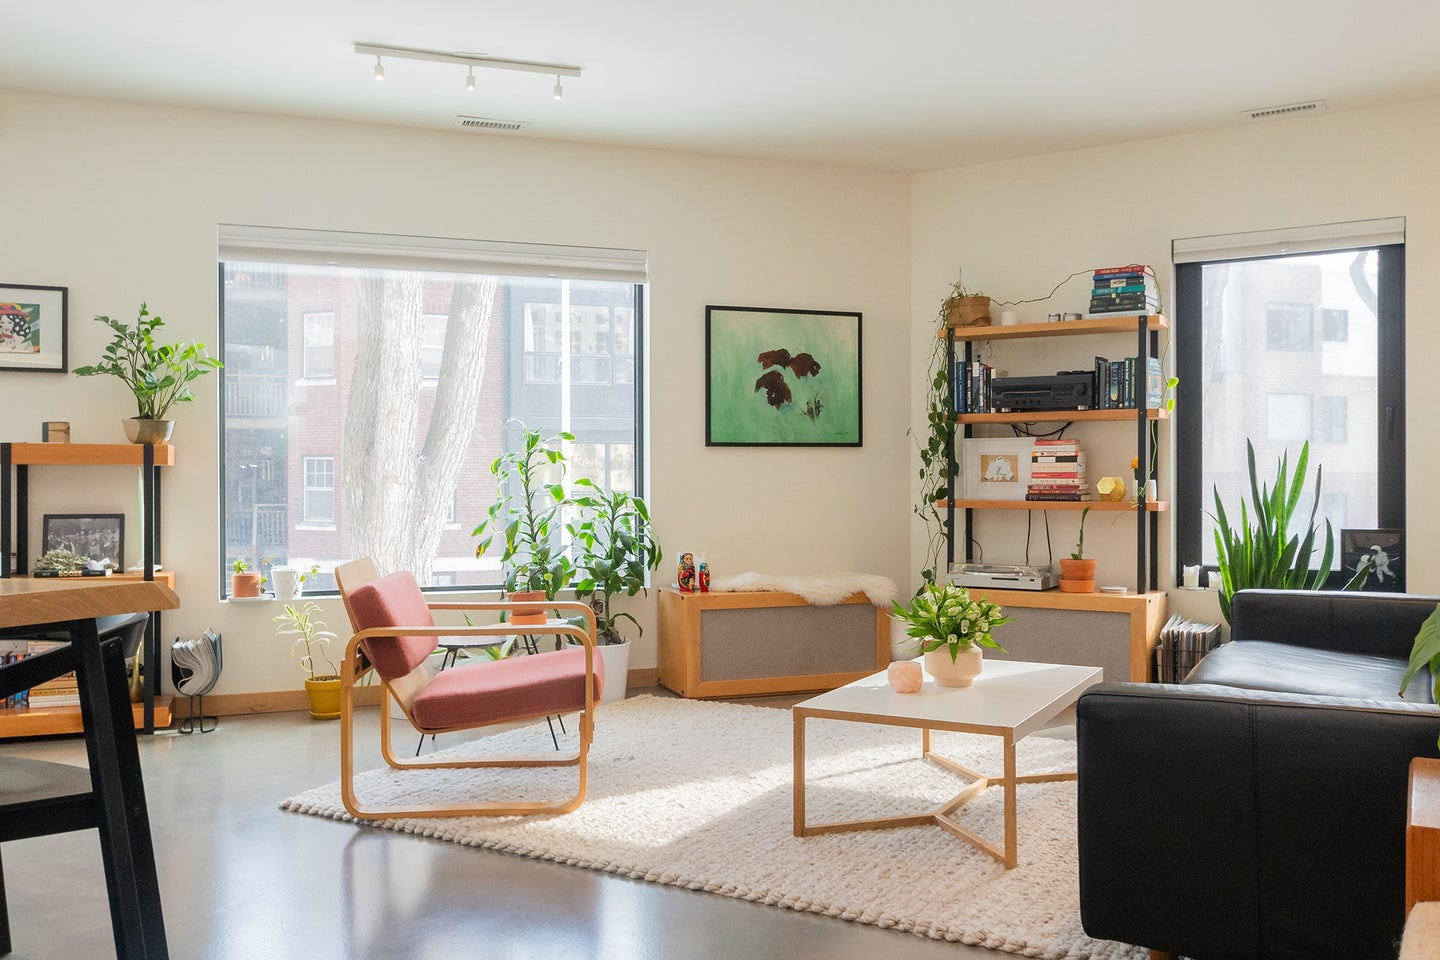 A well-organized living room with the best humidifier, chairs, tables, and bookshelves